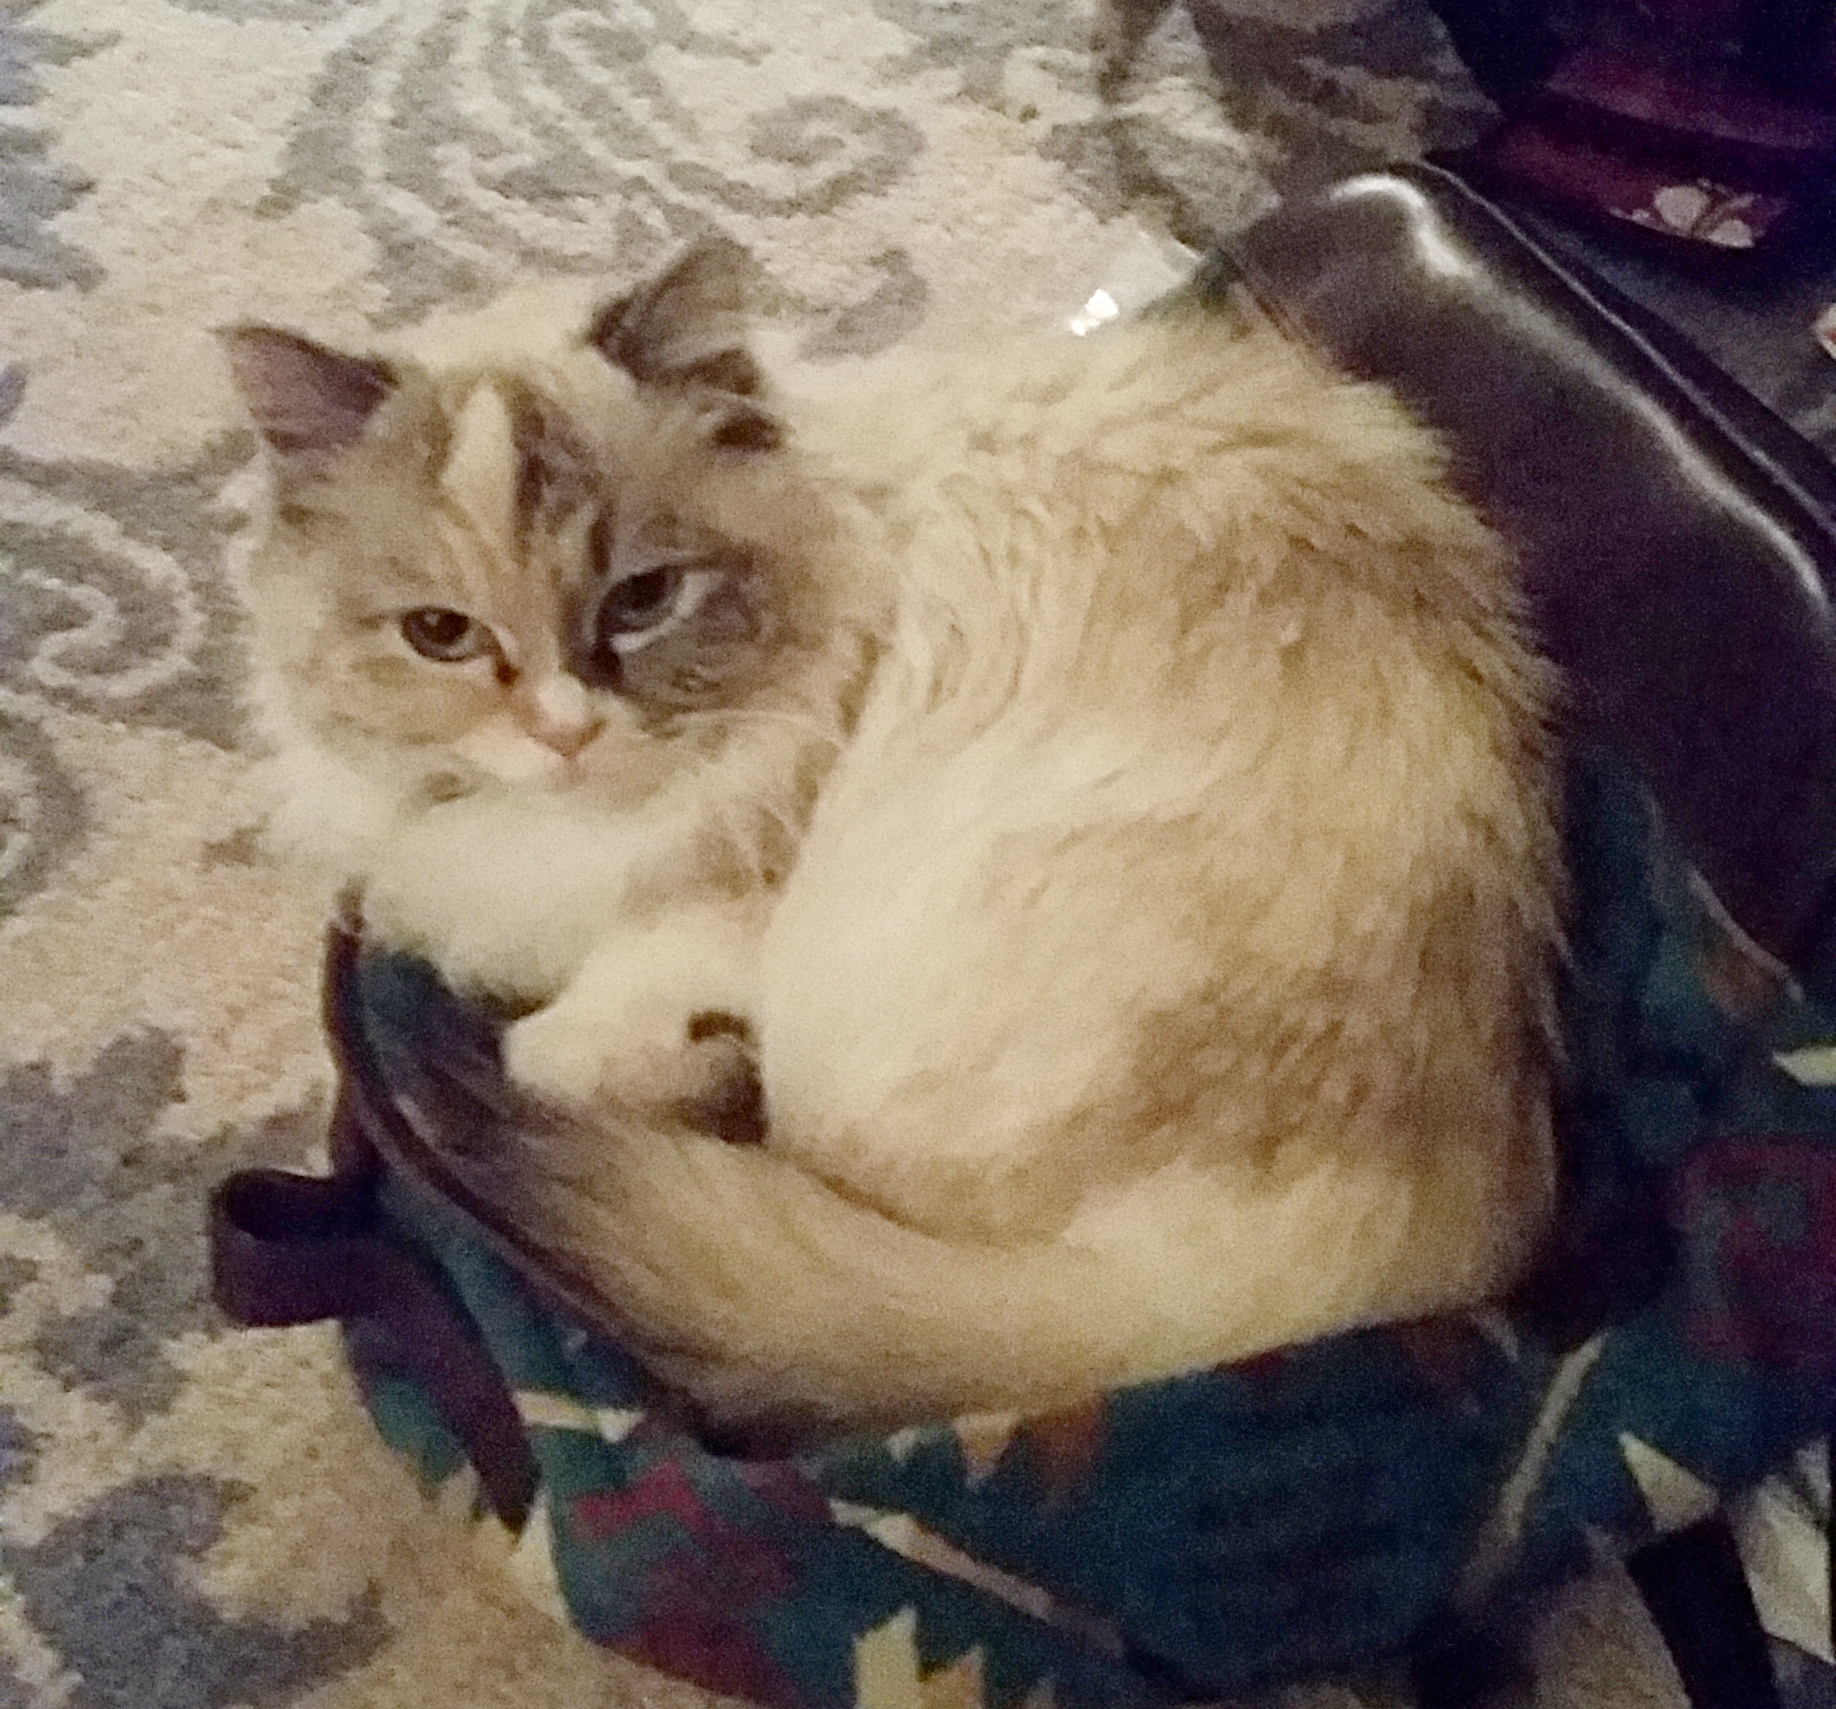 @KittenLeia always trying to sneak into my bags to come on my adventures.